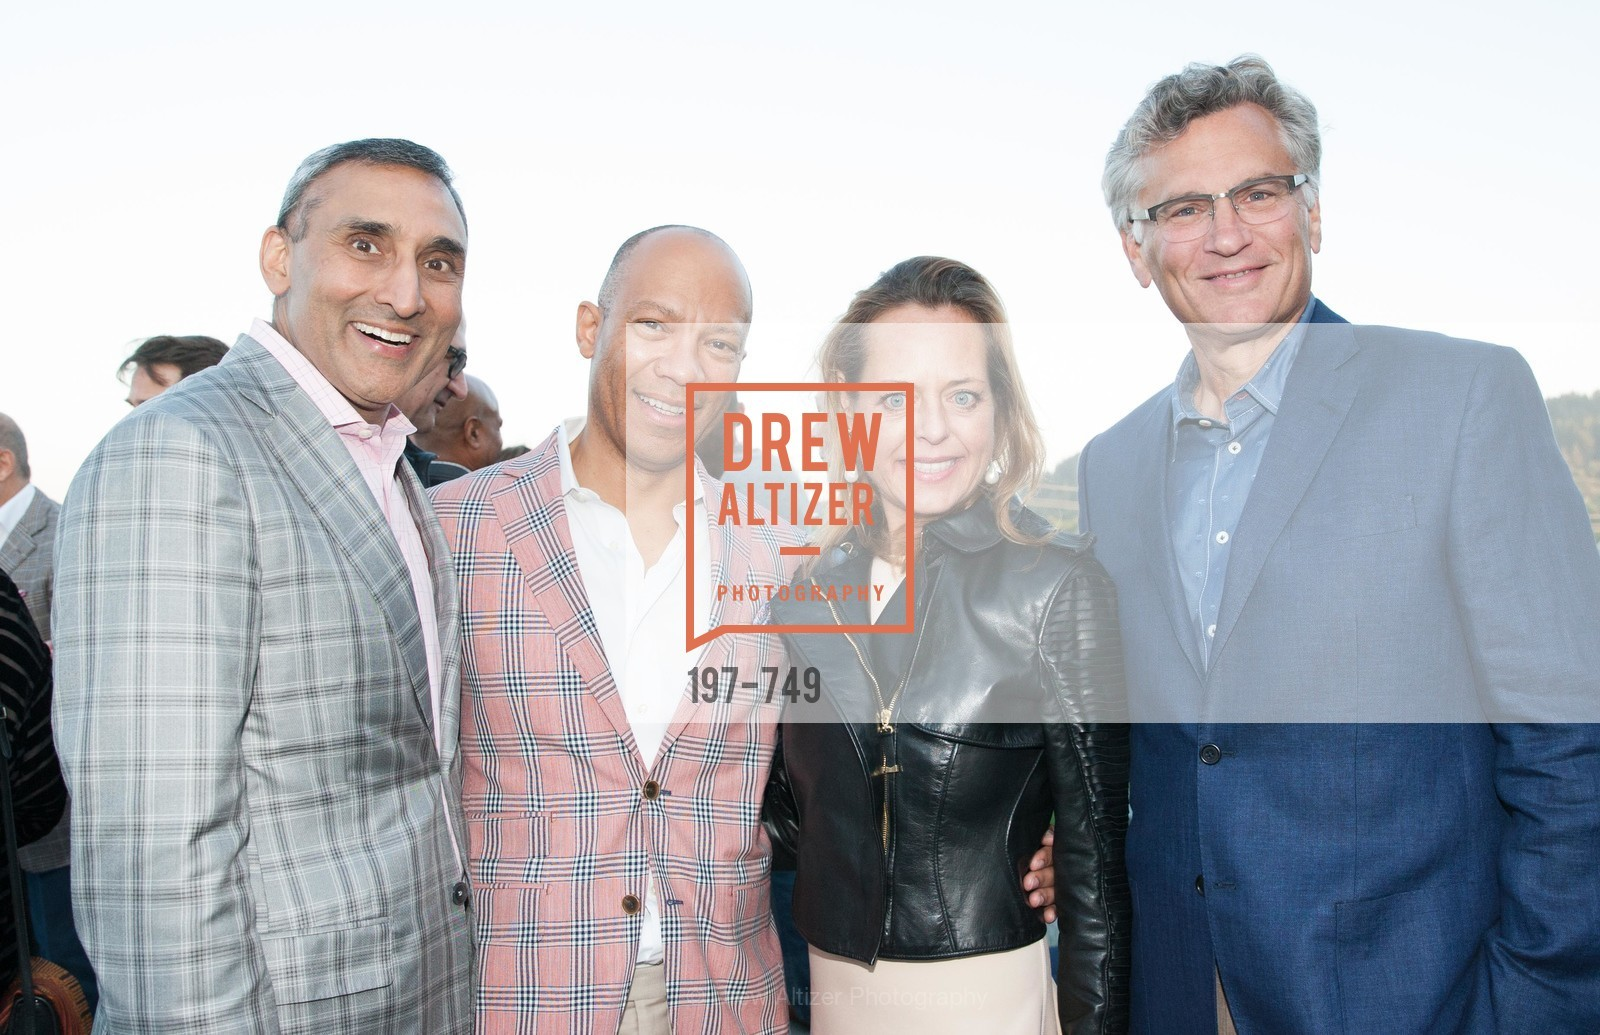 Inder Dhillon, Ken McNeely, Charlot Malin, Bill Lamkin, PETER COPPING Meets and Greets OSCAR DELA RENTA Clients and Associates at NEIMAN MARCUS, US, May 23rd, 2015,Drew Altizer, Drew Altizer Photography, full-service agency, private events, San Francisco photographer, photographer california